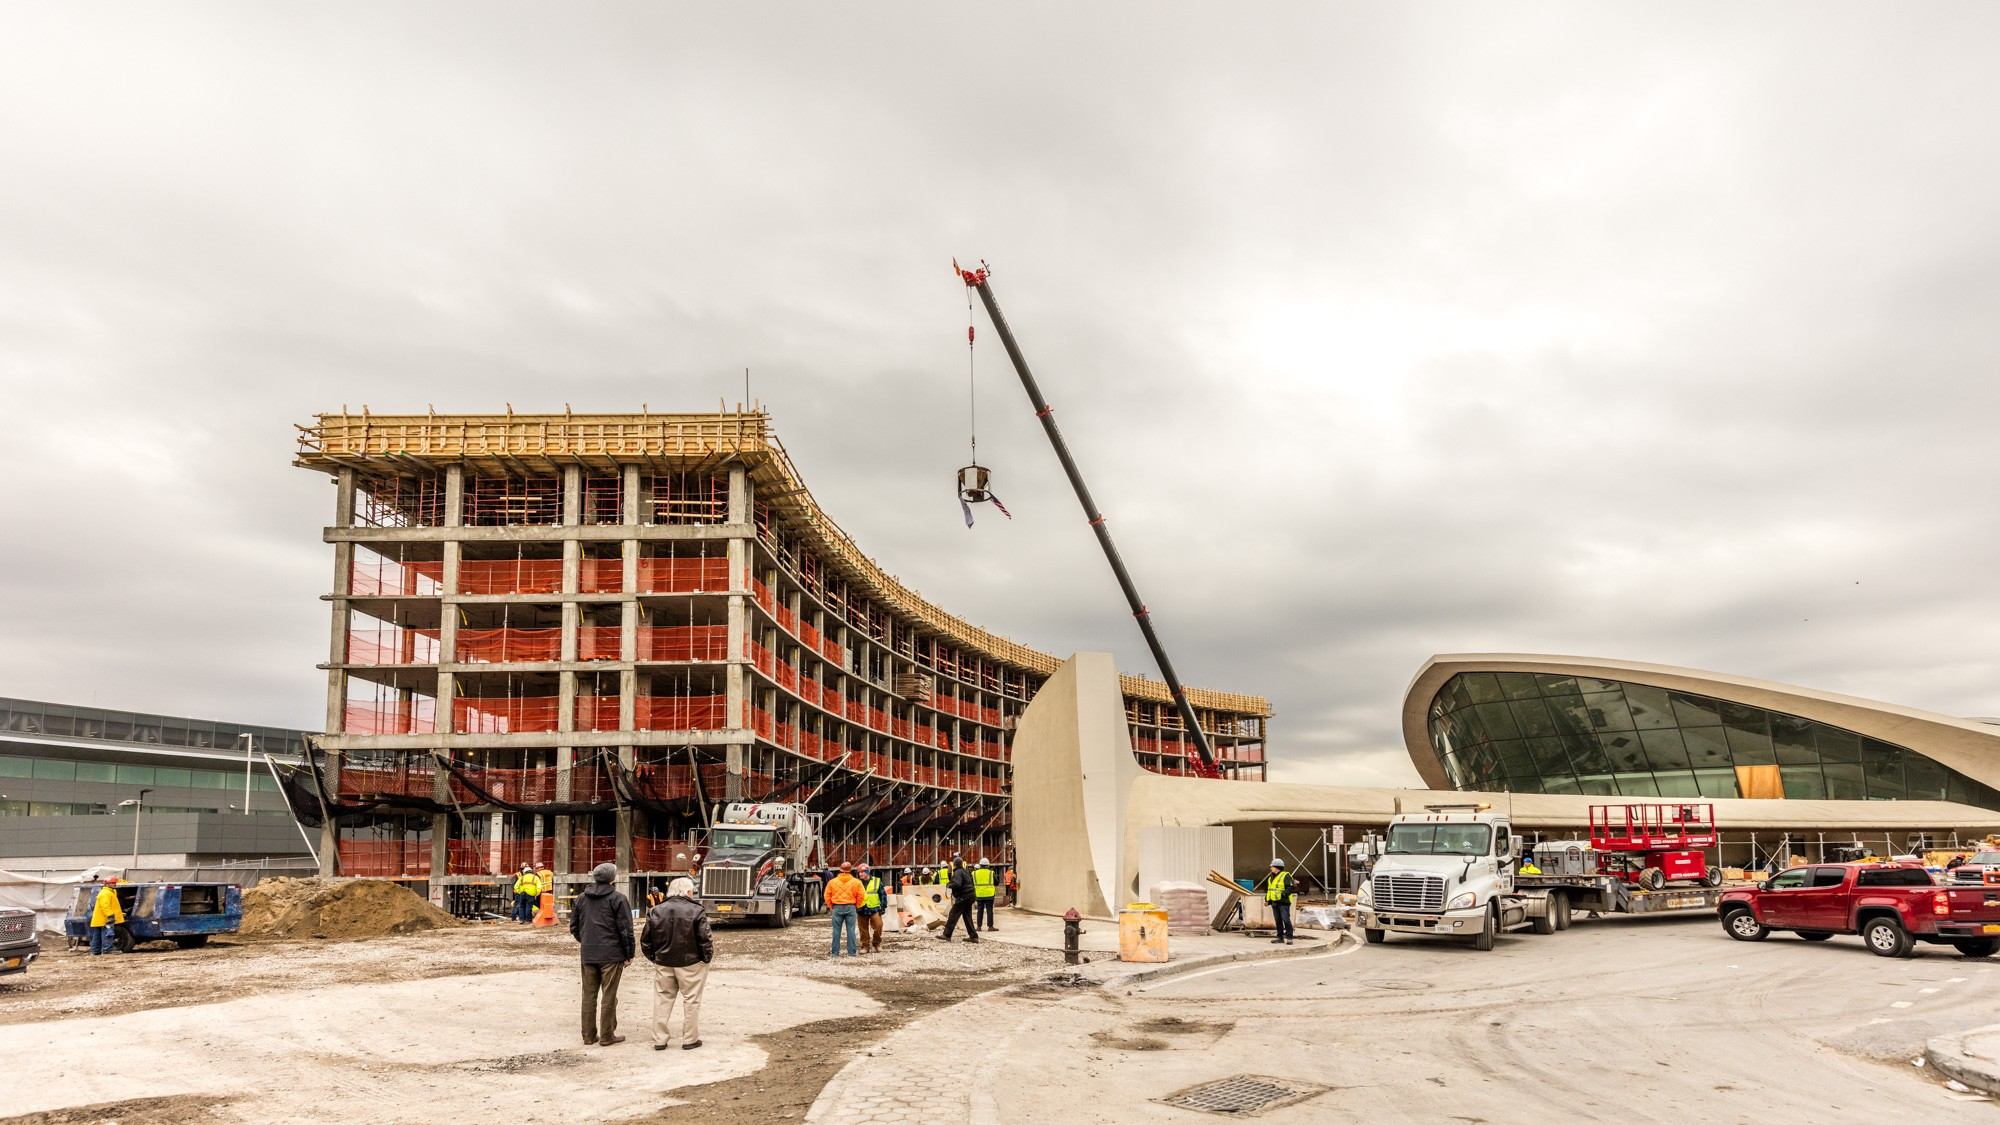 2-TWA-Topping-Out-TWA-Hotel-flag-and-American-flag-raised-by-crane-above-the-north-hotel-structure-Max-Touhey.jpg